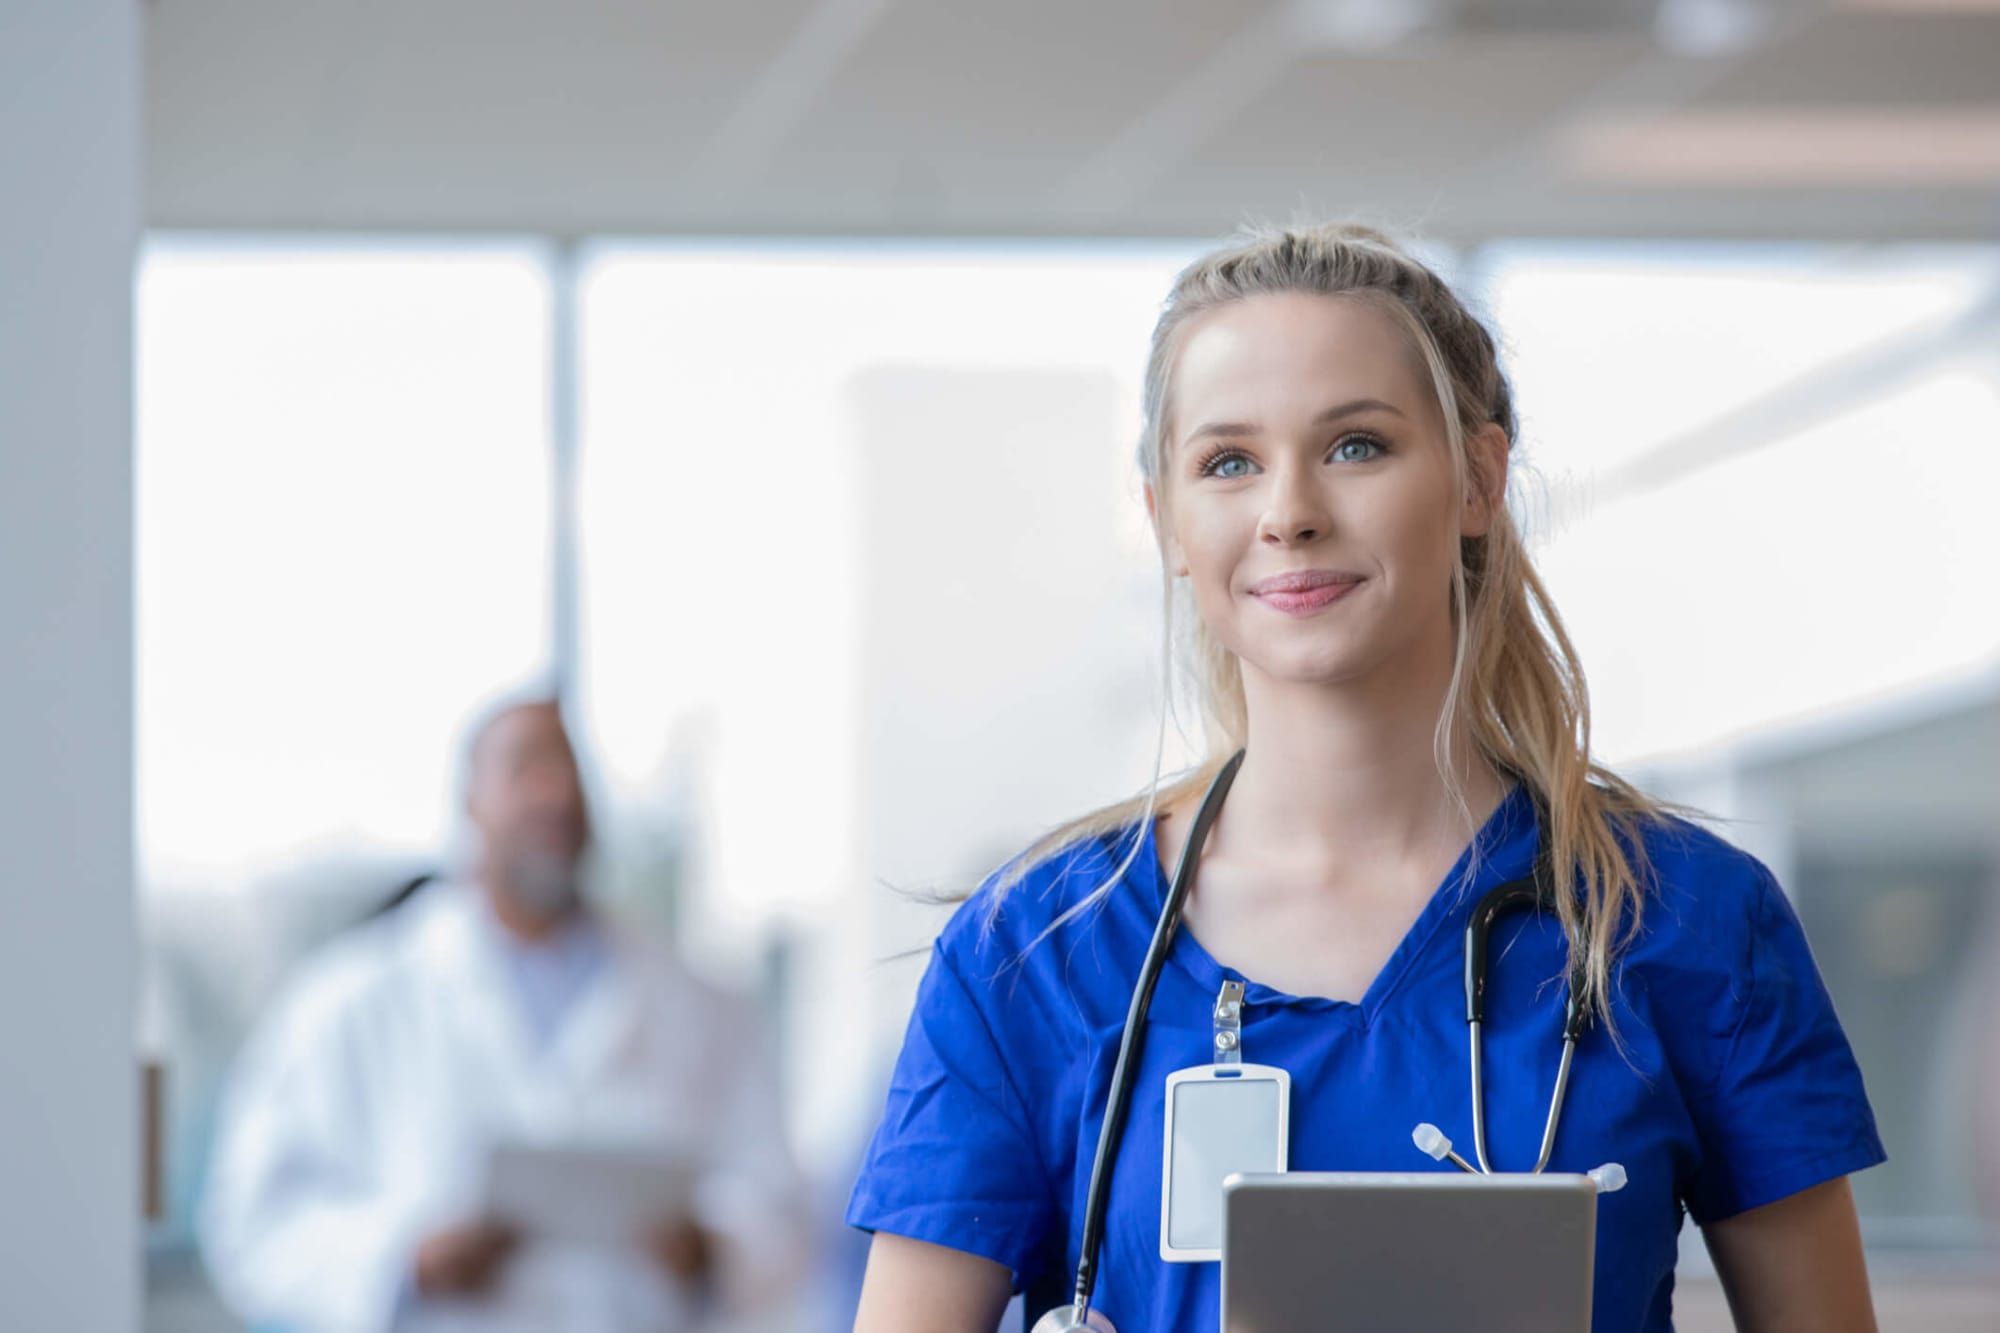 Can You Get Your Medical Assistant Certificate Online?